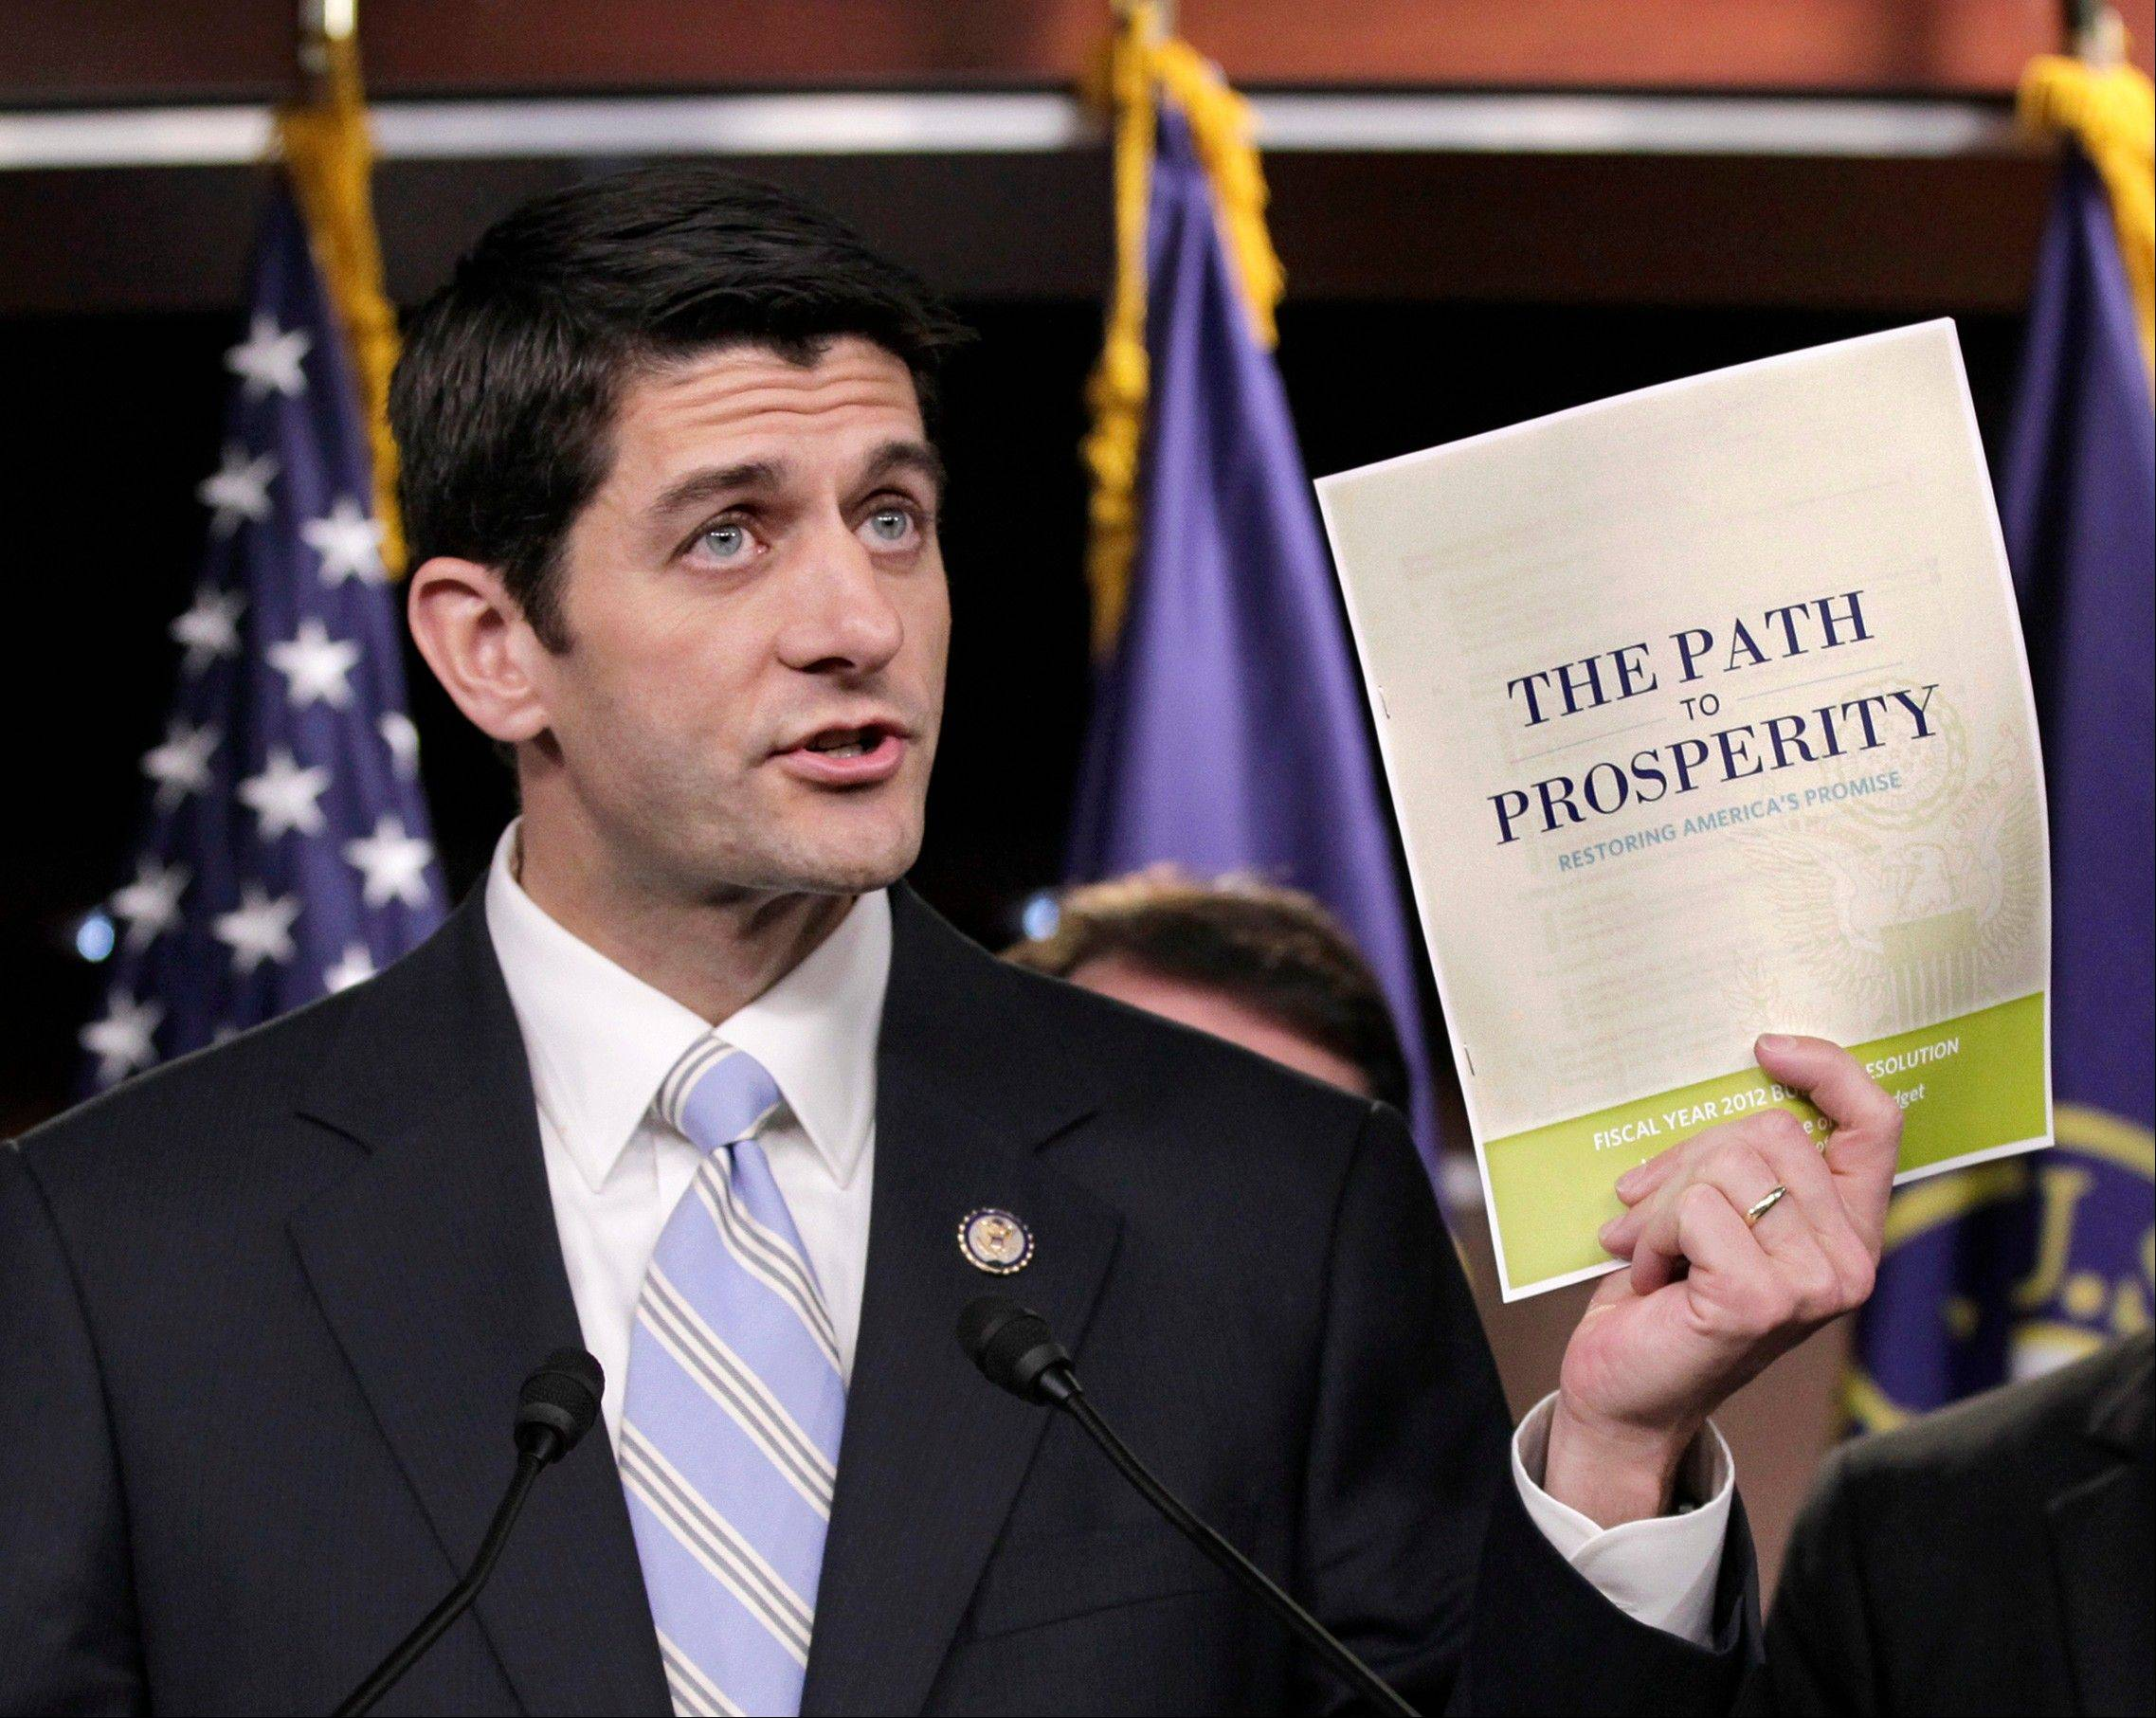 Back to budgets, Ryan returns to comfortable topic